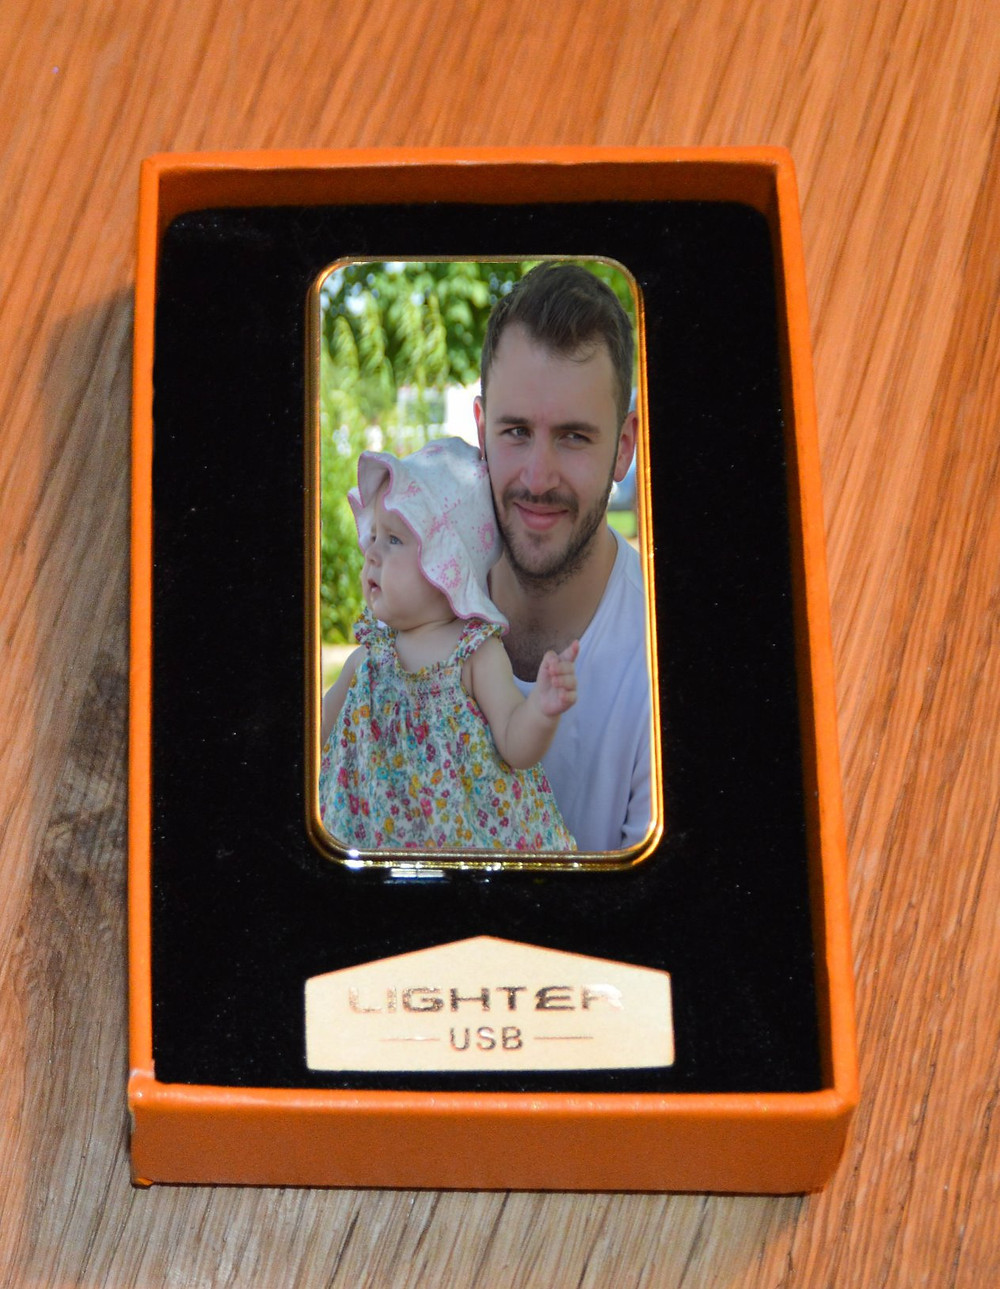 Personalised Cigarette Lighter USB No Flame